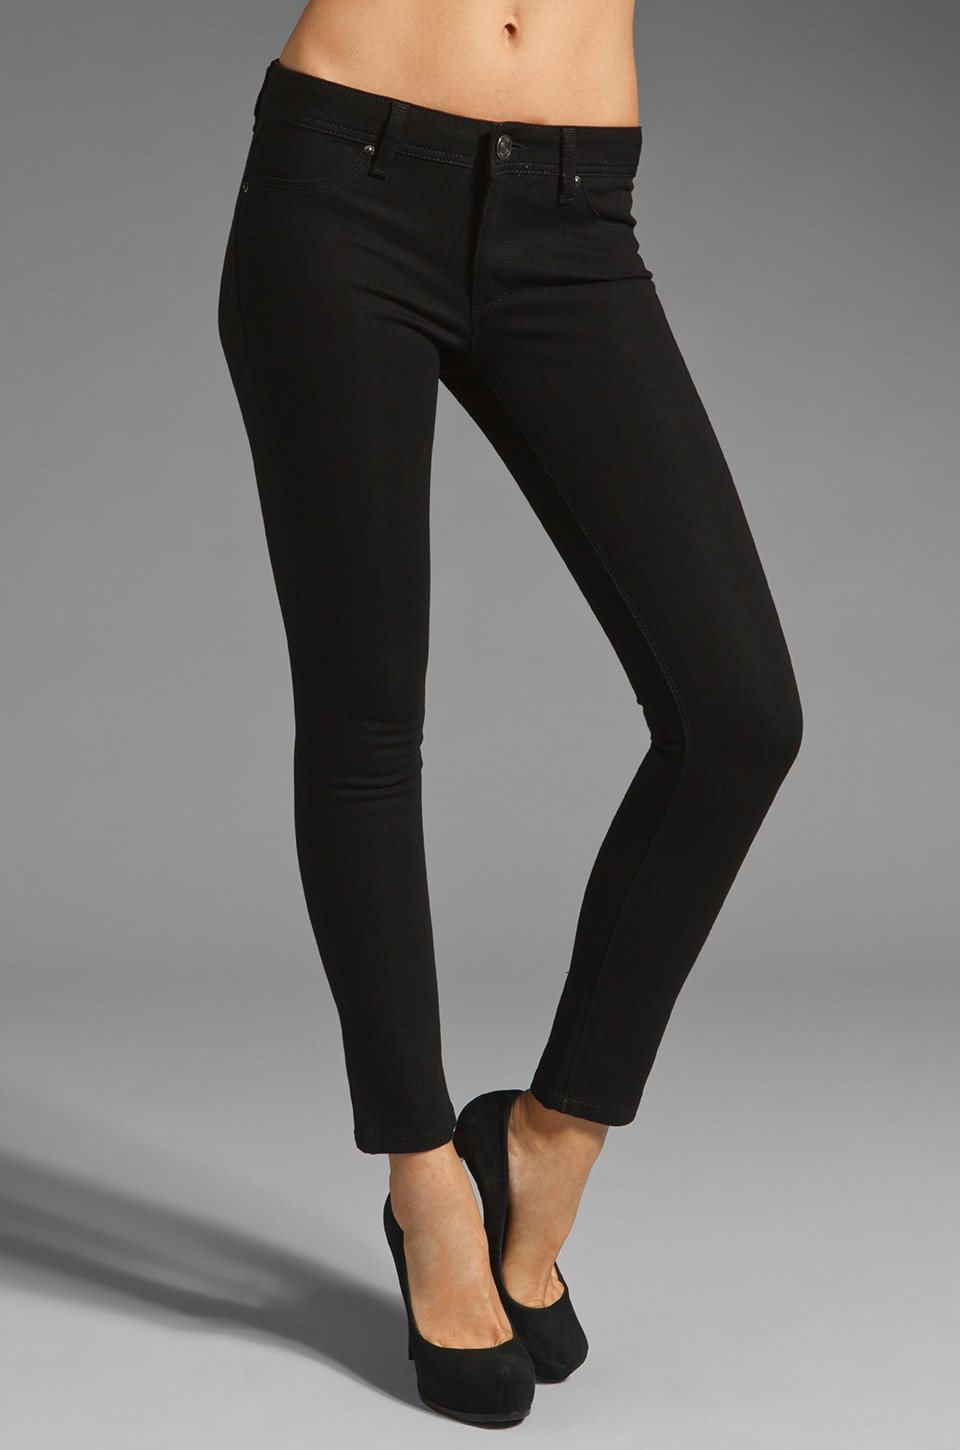 DL1961 Emma Legging in Onyx